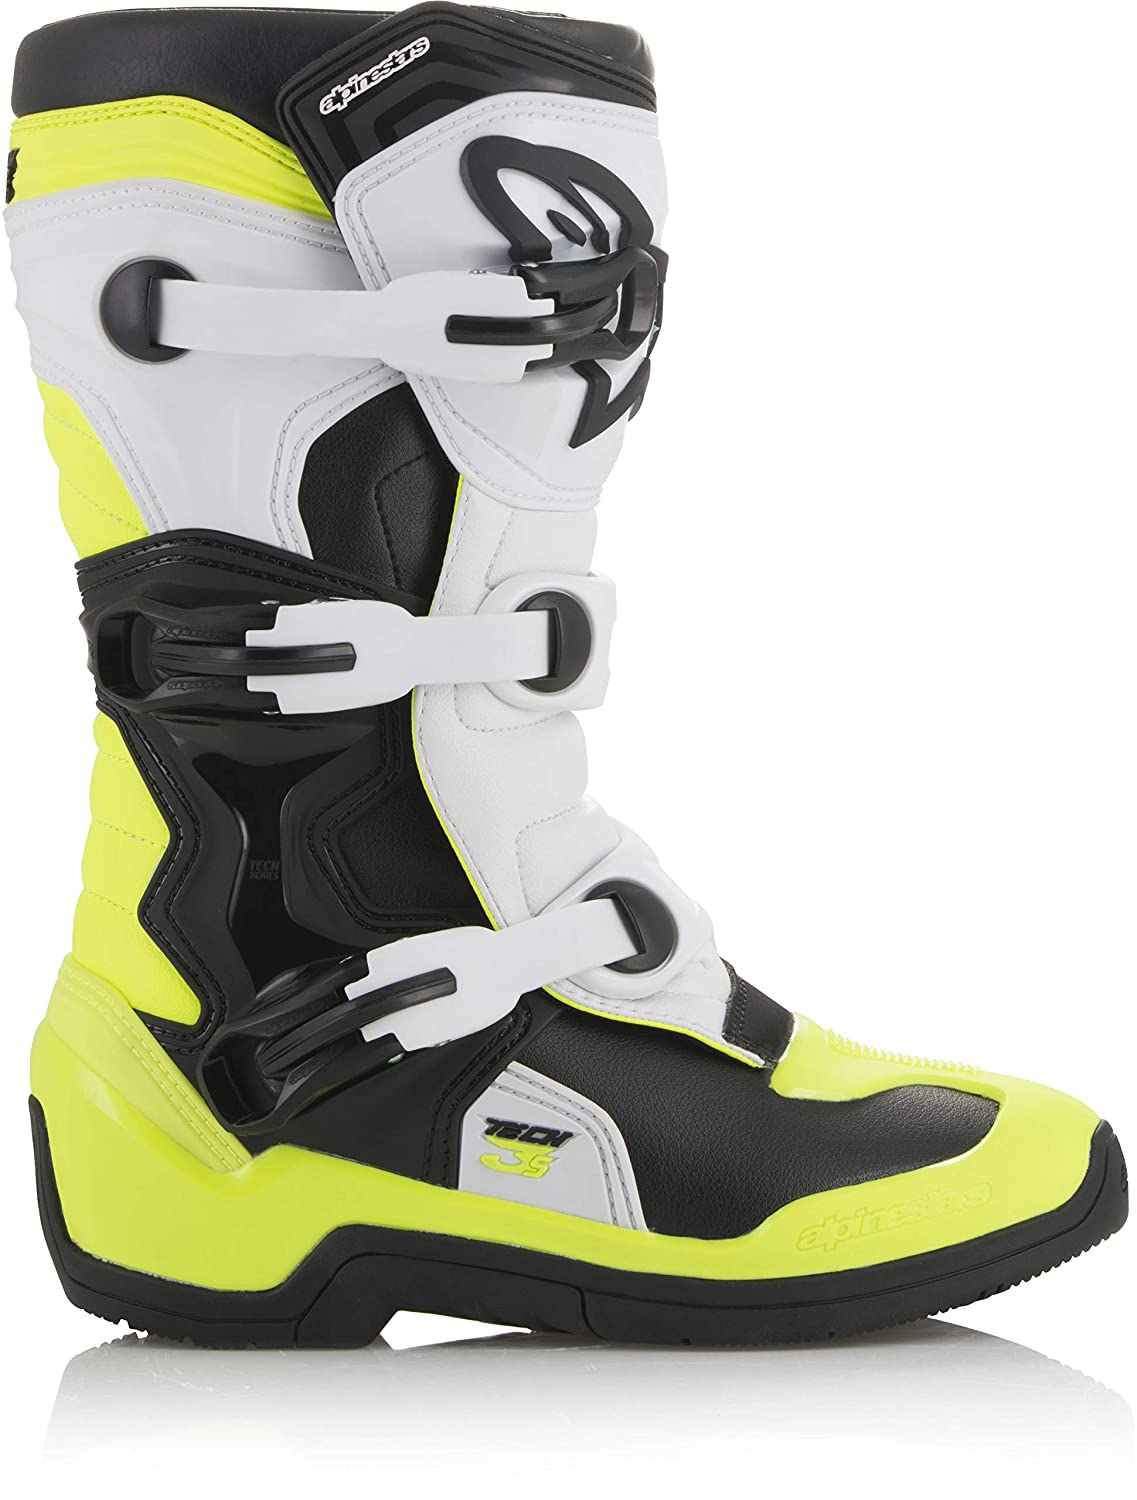 Alpinestars Tech 3S Youth MX Boots